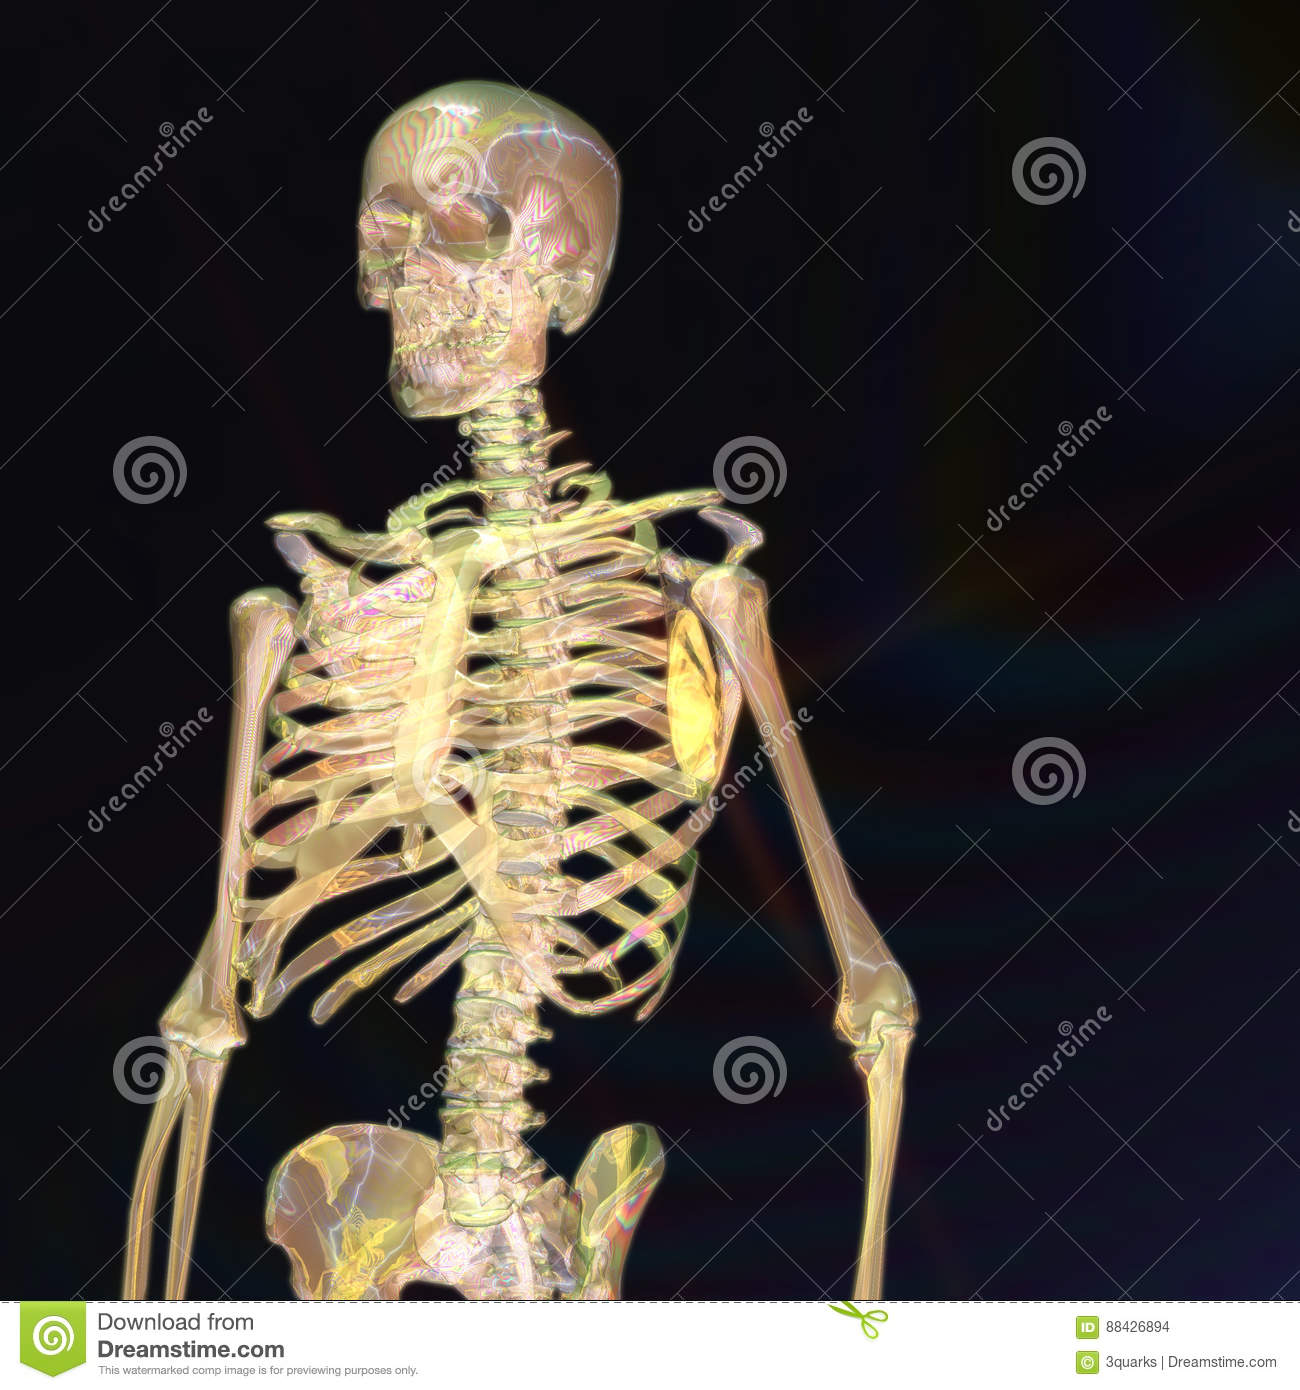 Digital Rendering of a human Skeleton